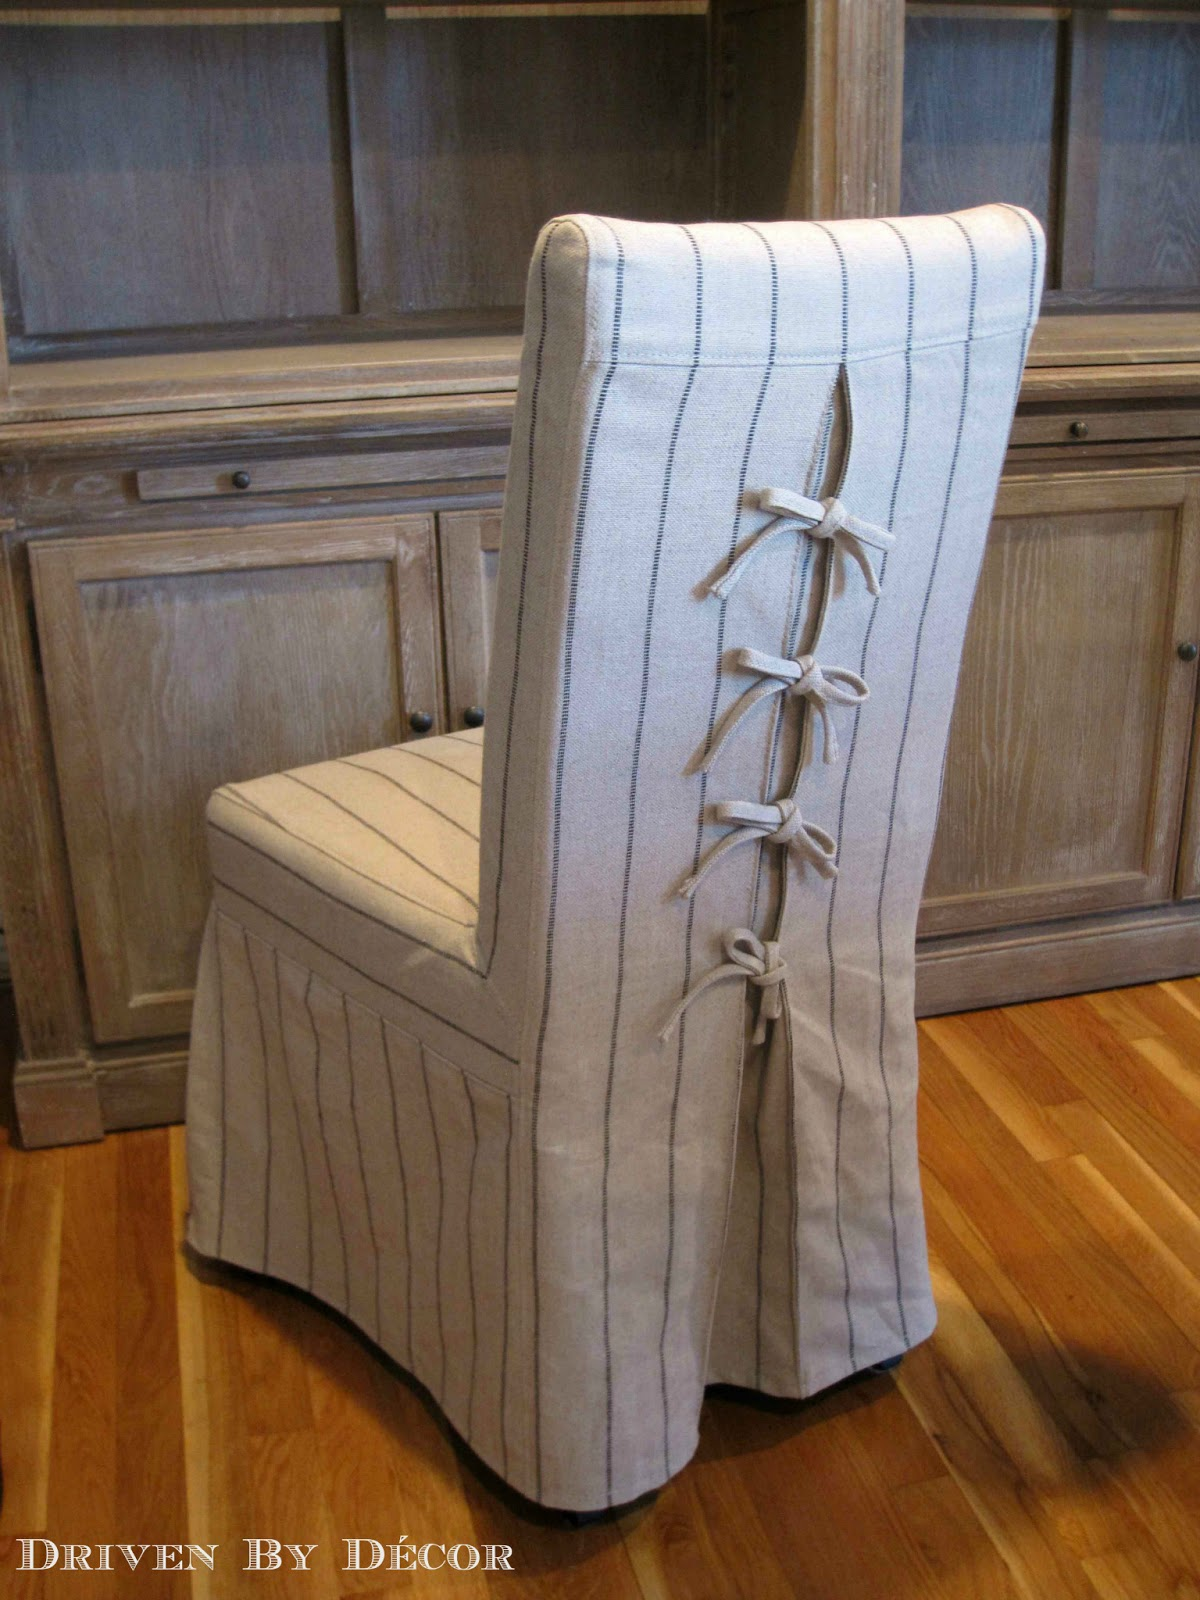 Dress Up Your Dining Chairs Corseted Slipcovers Driven  : TiebackchairsforofficeWM from www.drivenbydecor.com size 1200 x 1600 jpeg 262kB